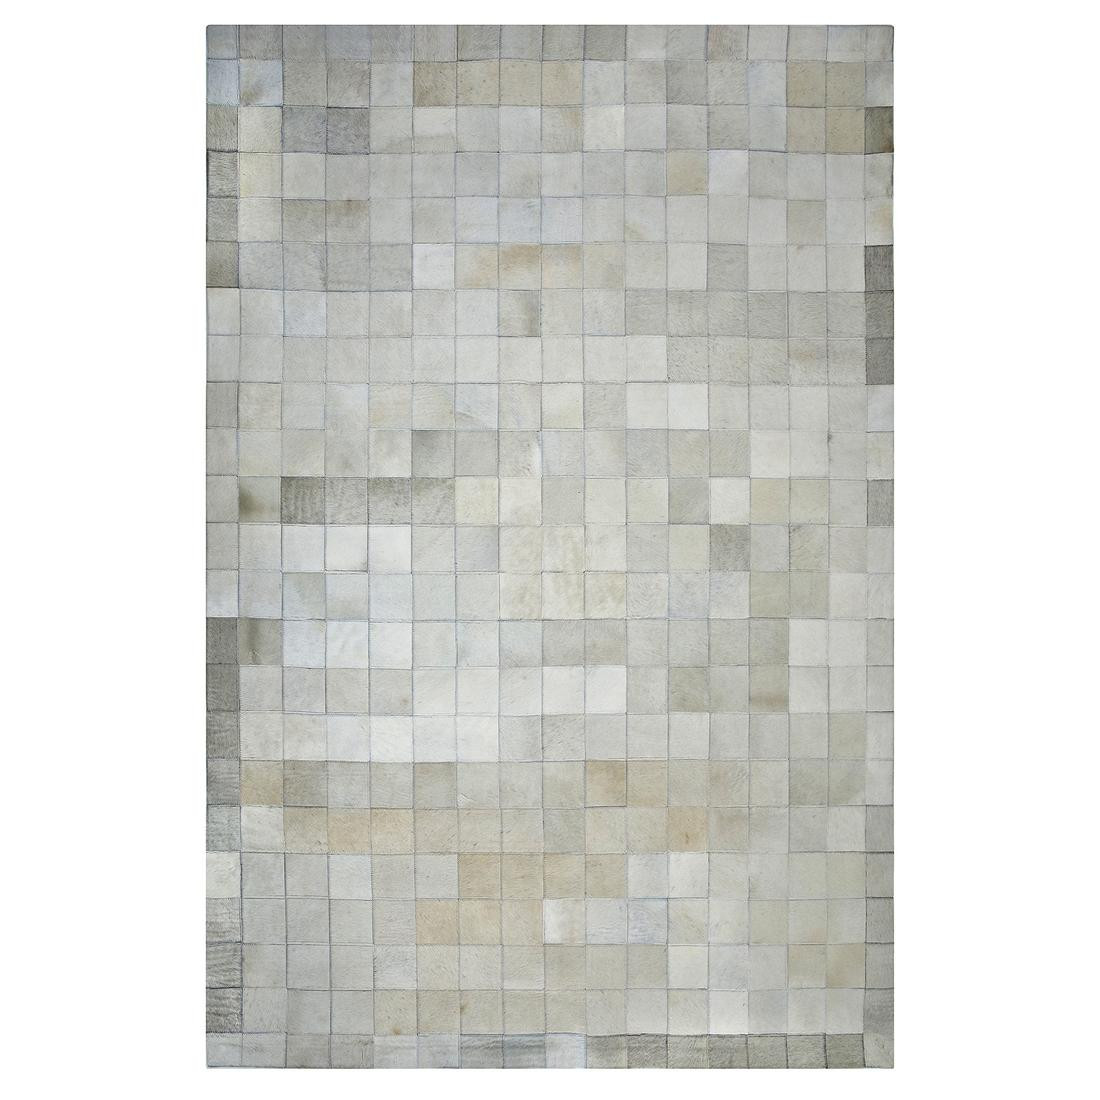 Tapete Couro Natural - 0,60x1,00